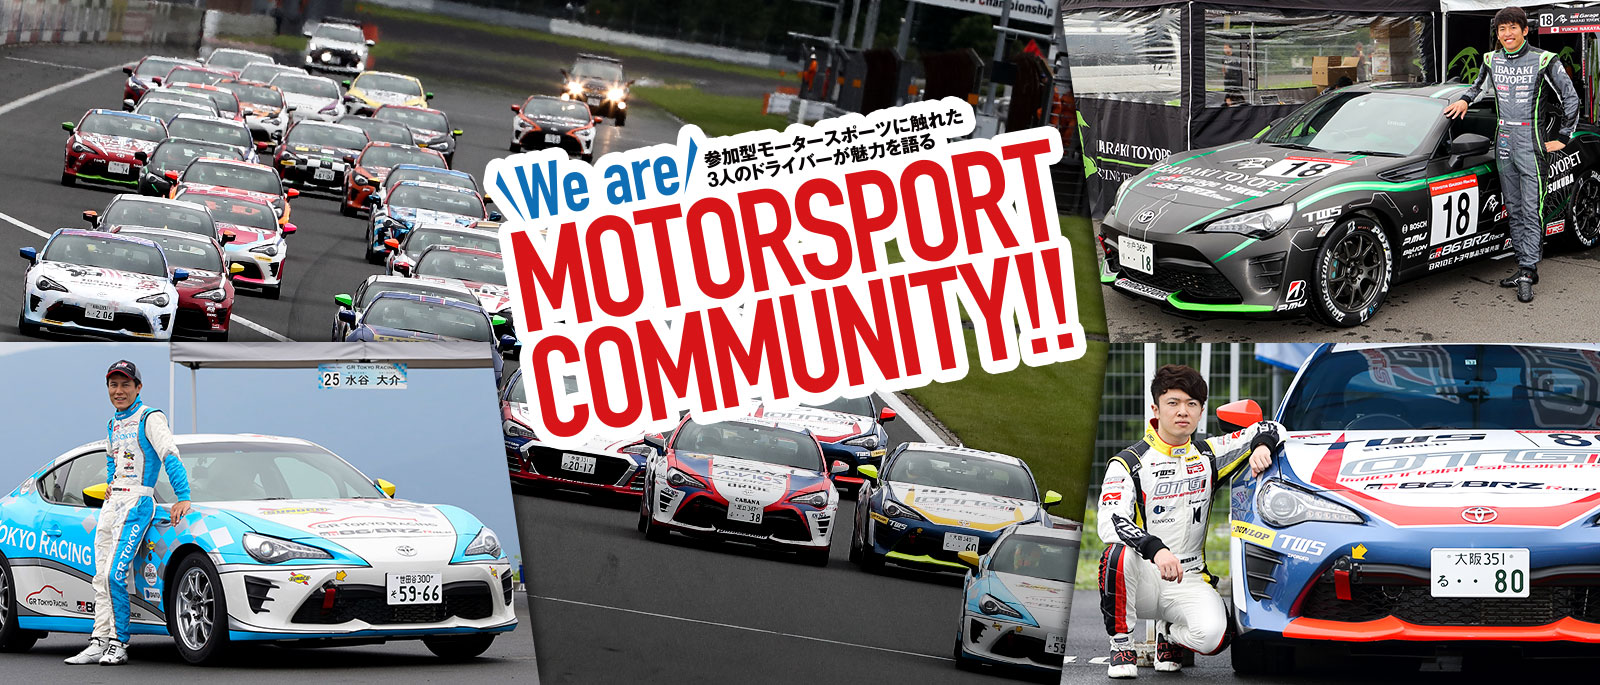 We are MOTORSPORT COMMUNITY!!